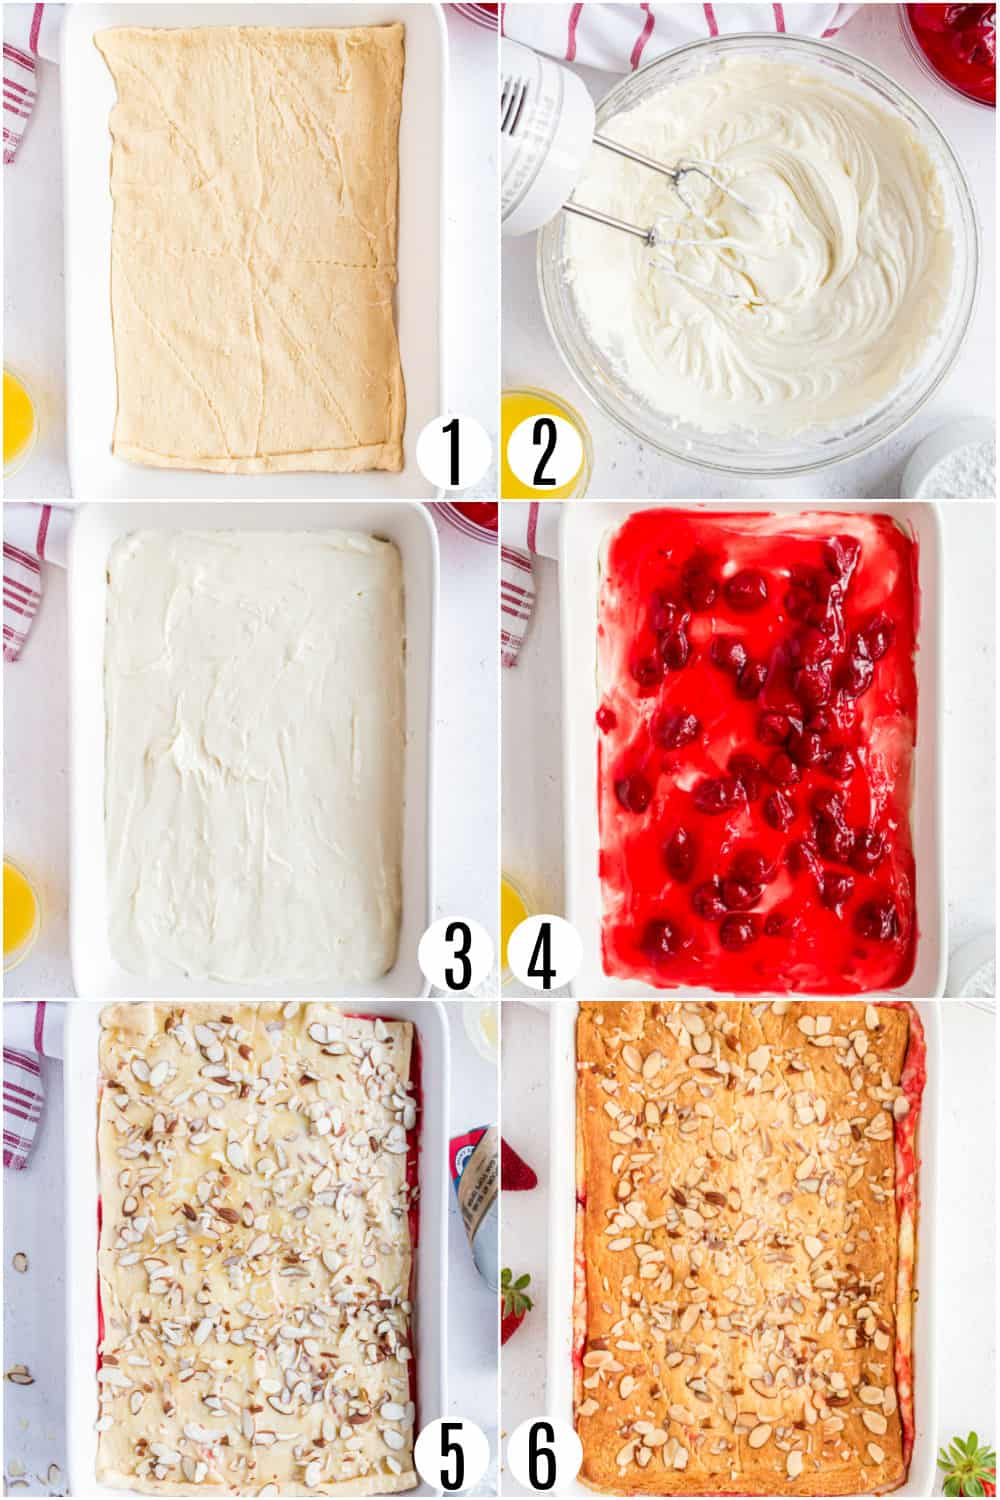 Step by step photos showing how to assemble strawberry cream cheese danish.